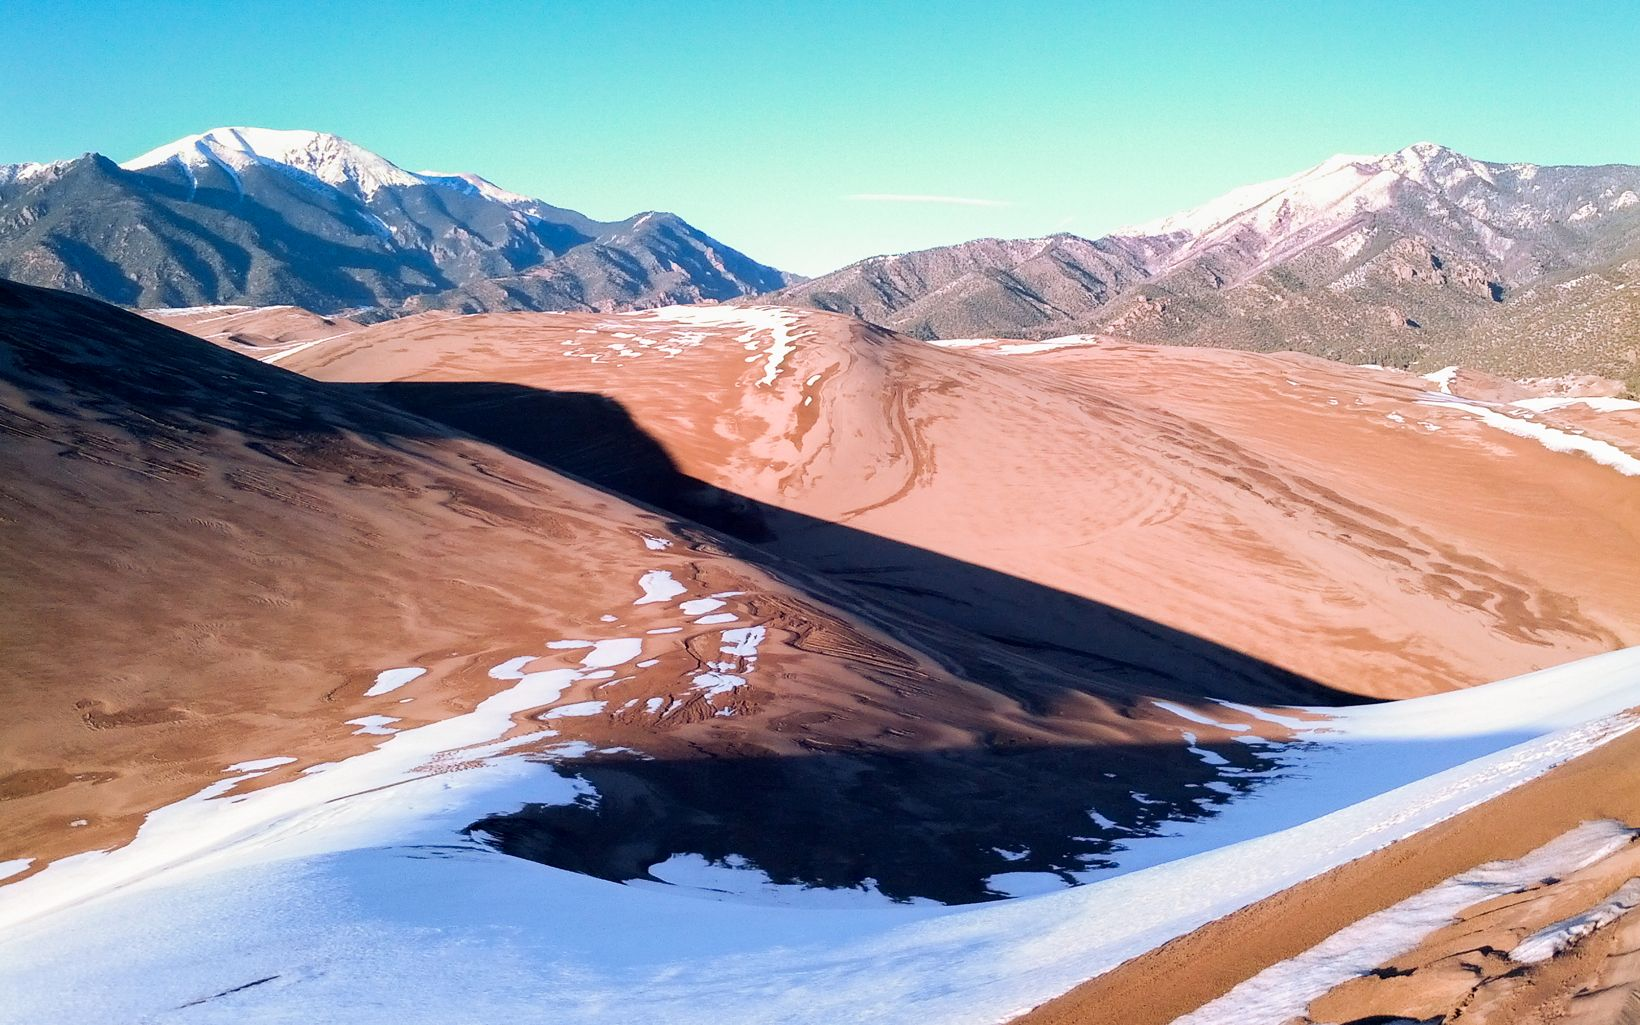 Shadows fall across the snowy landscape at the Great Sand Dunes National Park in San Luis Valley, CO.